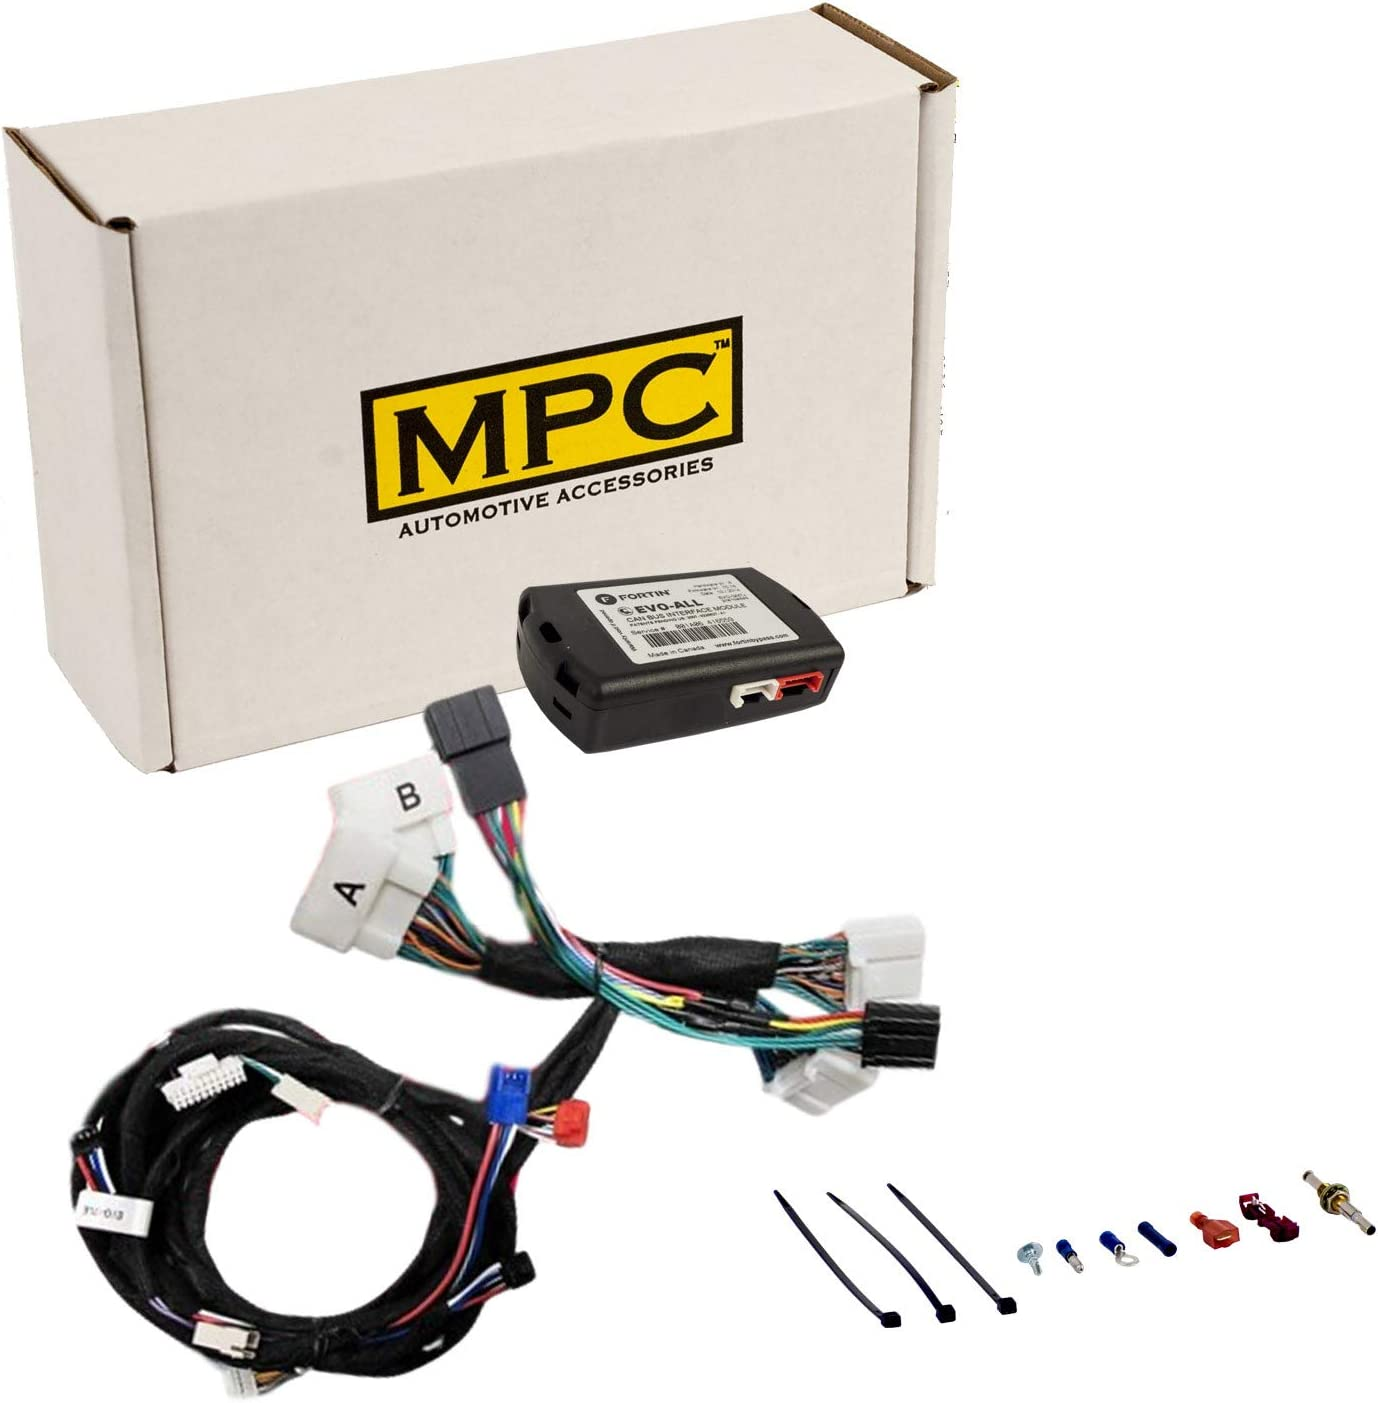 w//T-Harness MPC Complete Plug-n-Play Factory Remote Activated Remote Start Kit for 2016-2020 Lexus IS300